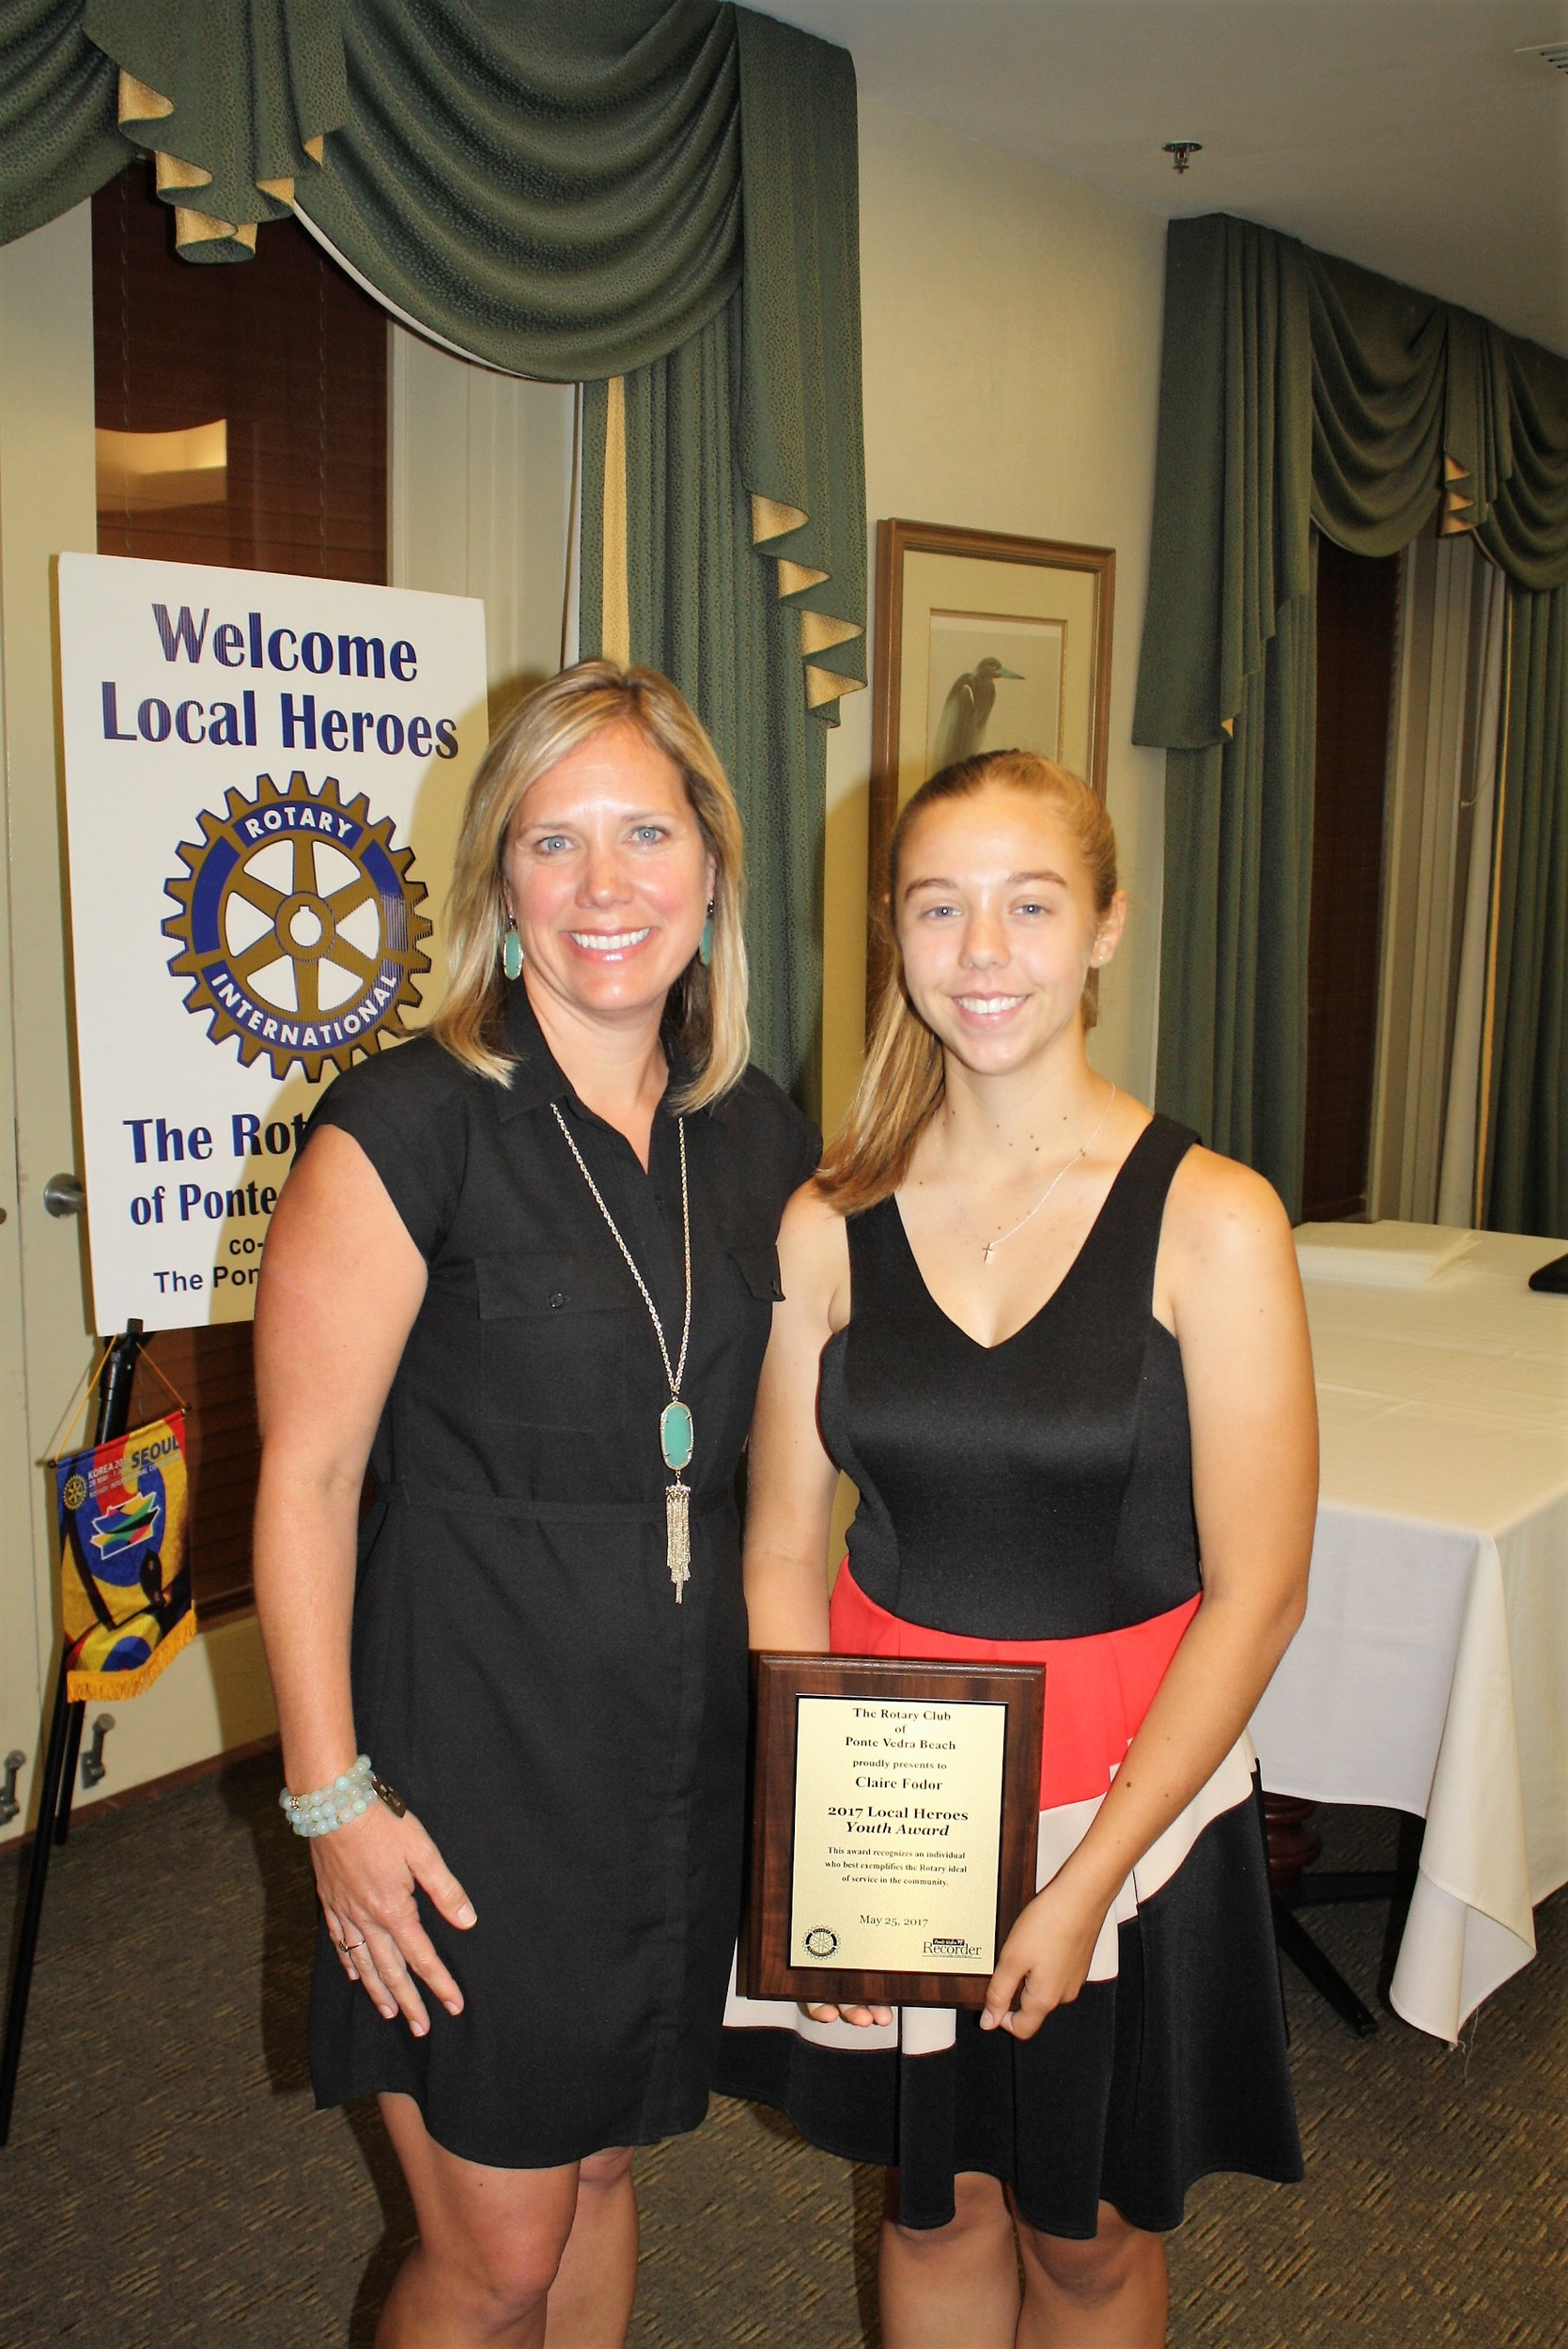 Ocean Palms Principal Jessica Richardson with Local Heroes Youth Award recipient Claire Fodor